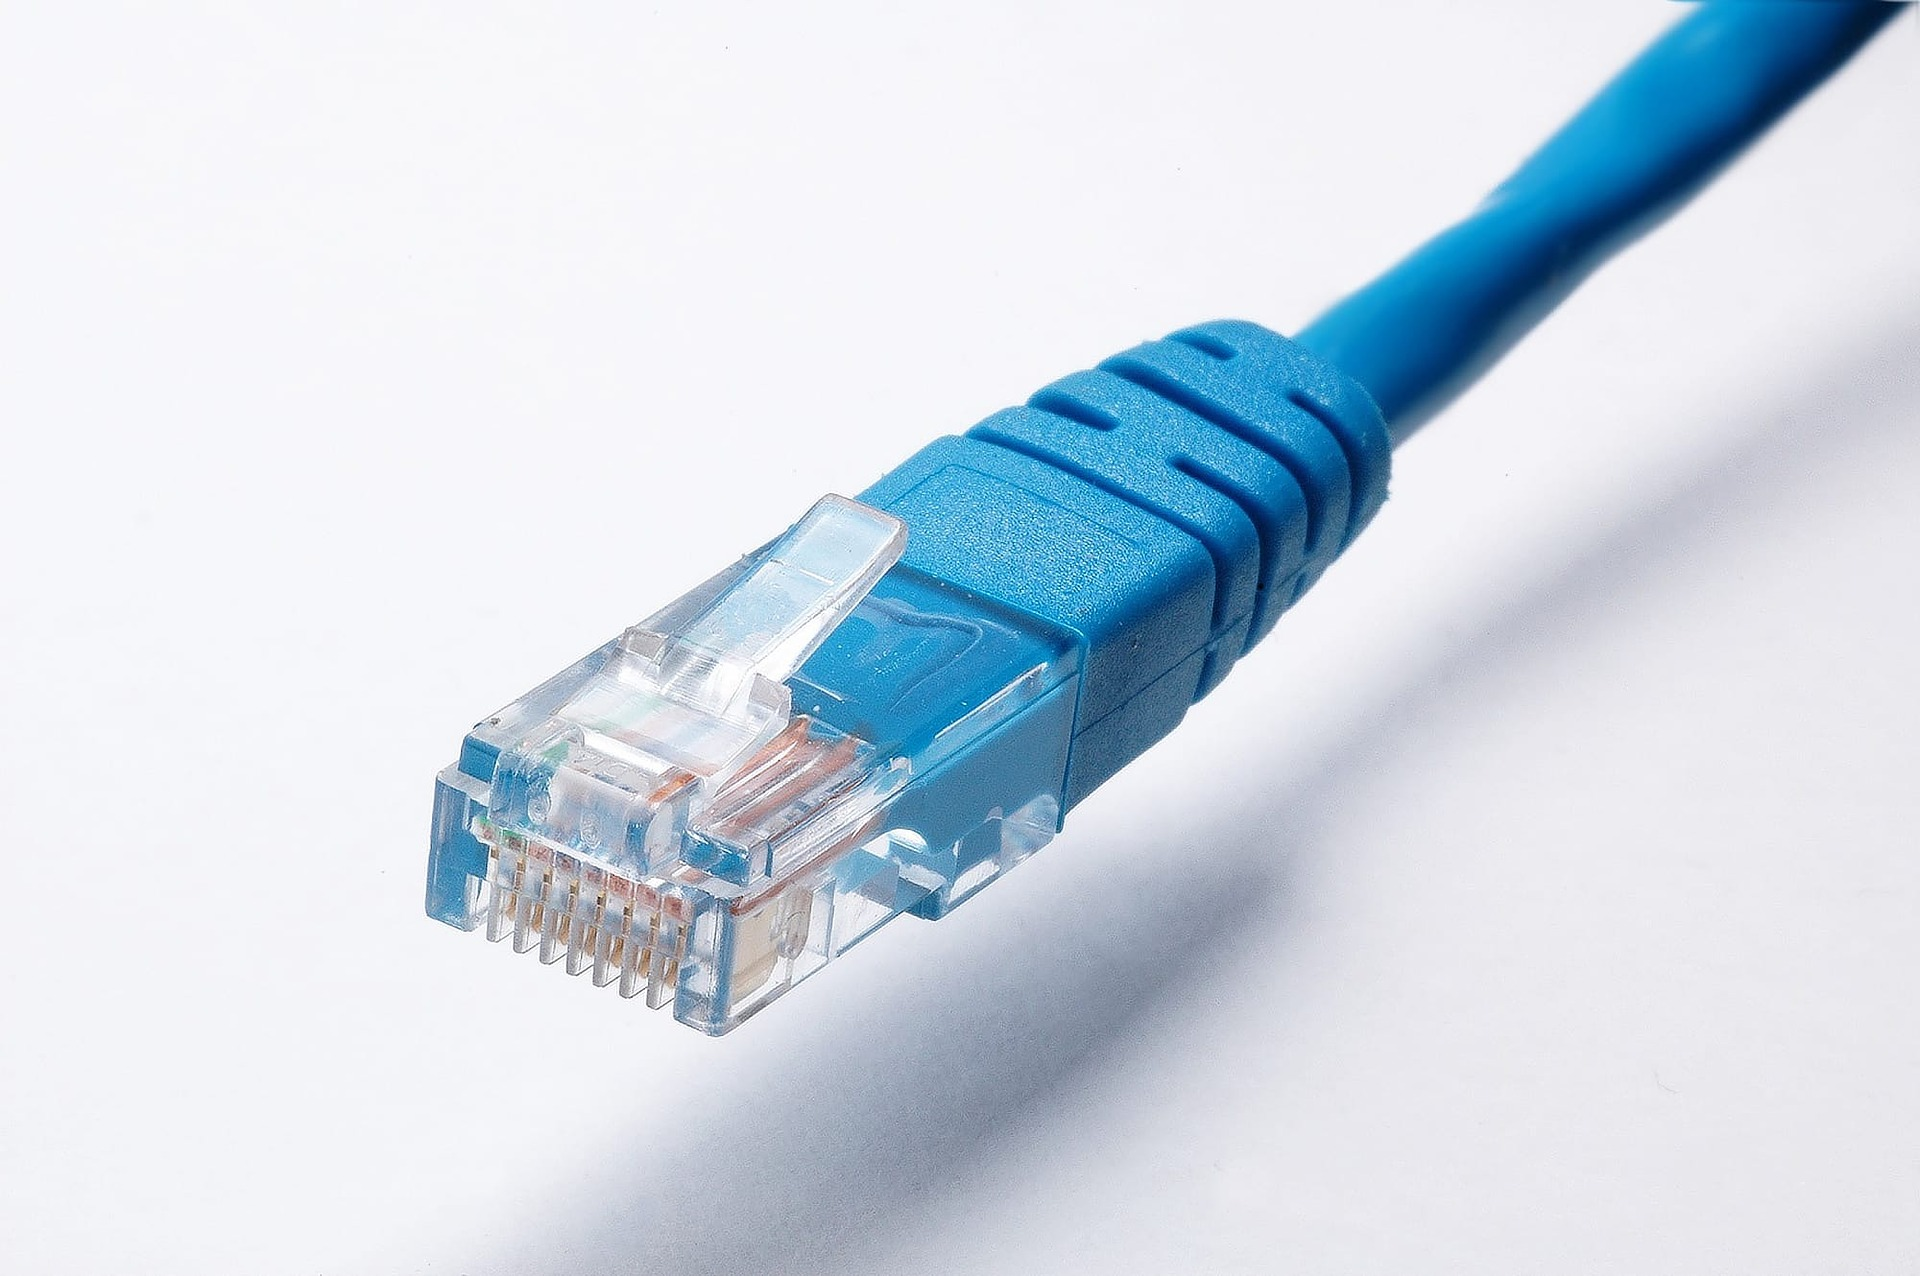 network-cable-2245837_1920